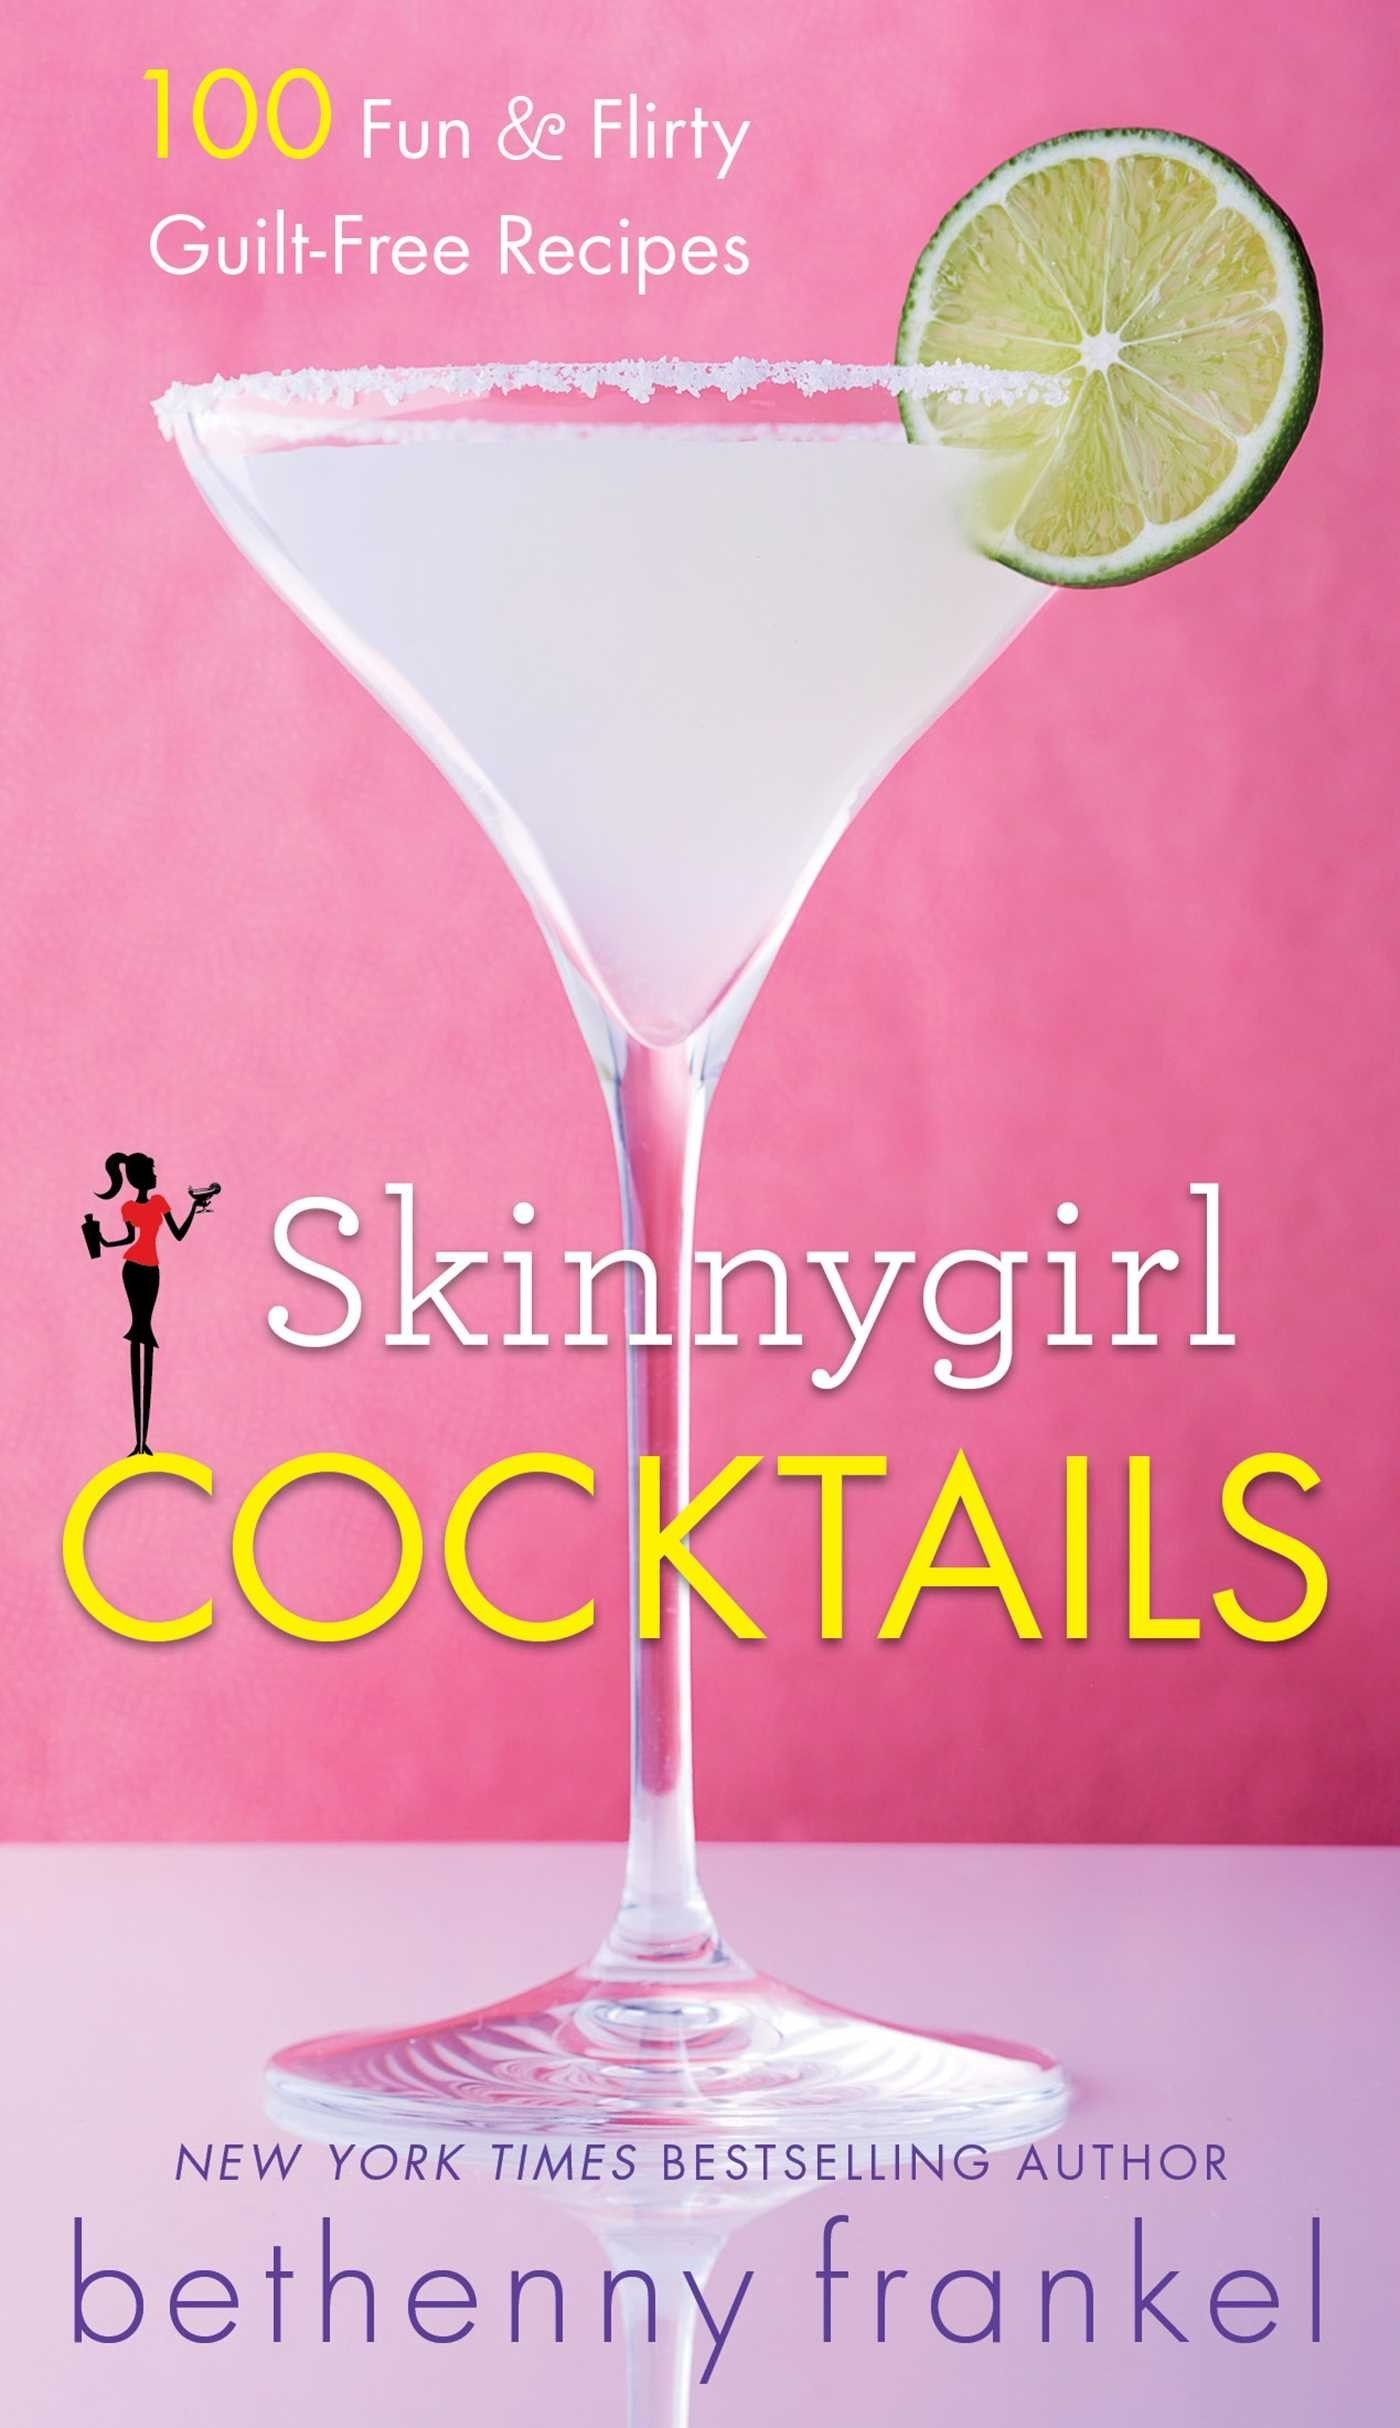 the cover of bethenny's book